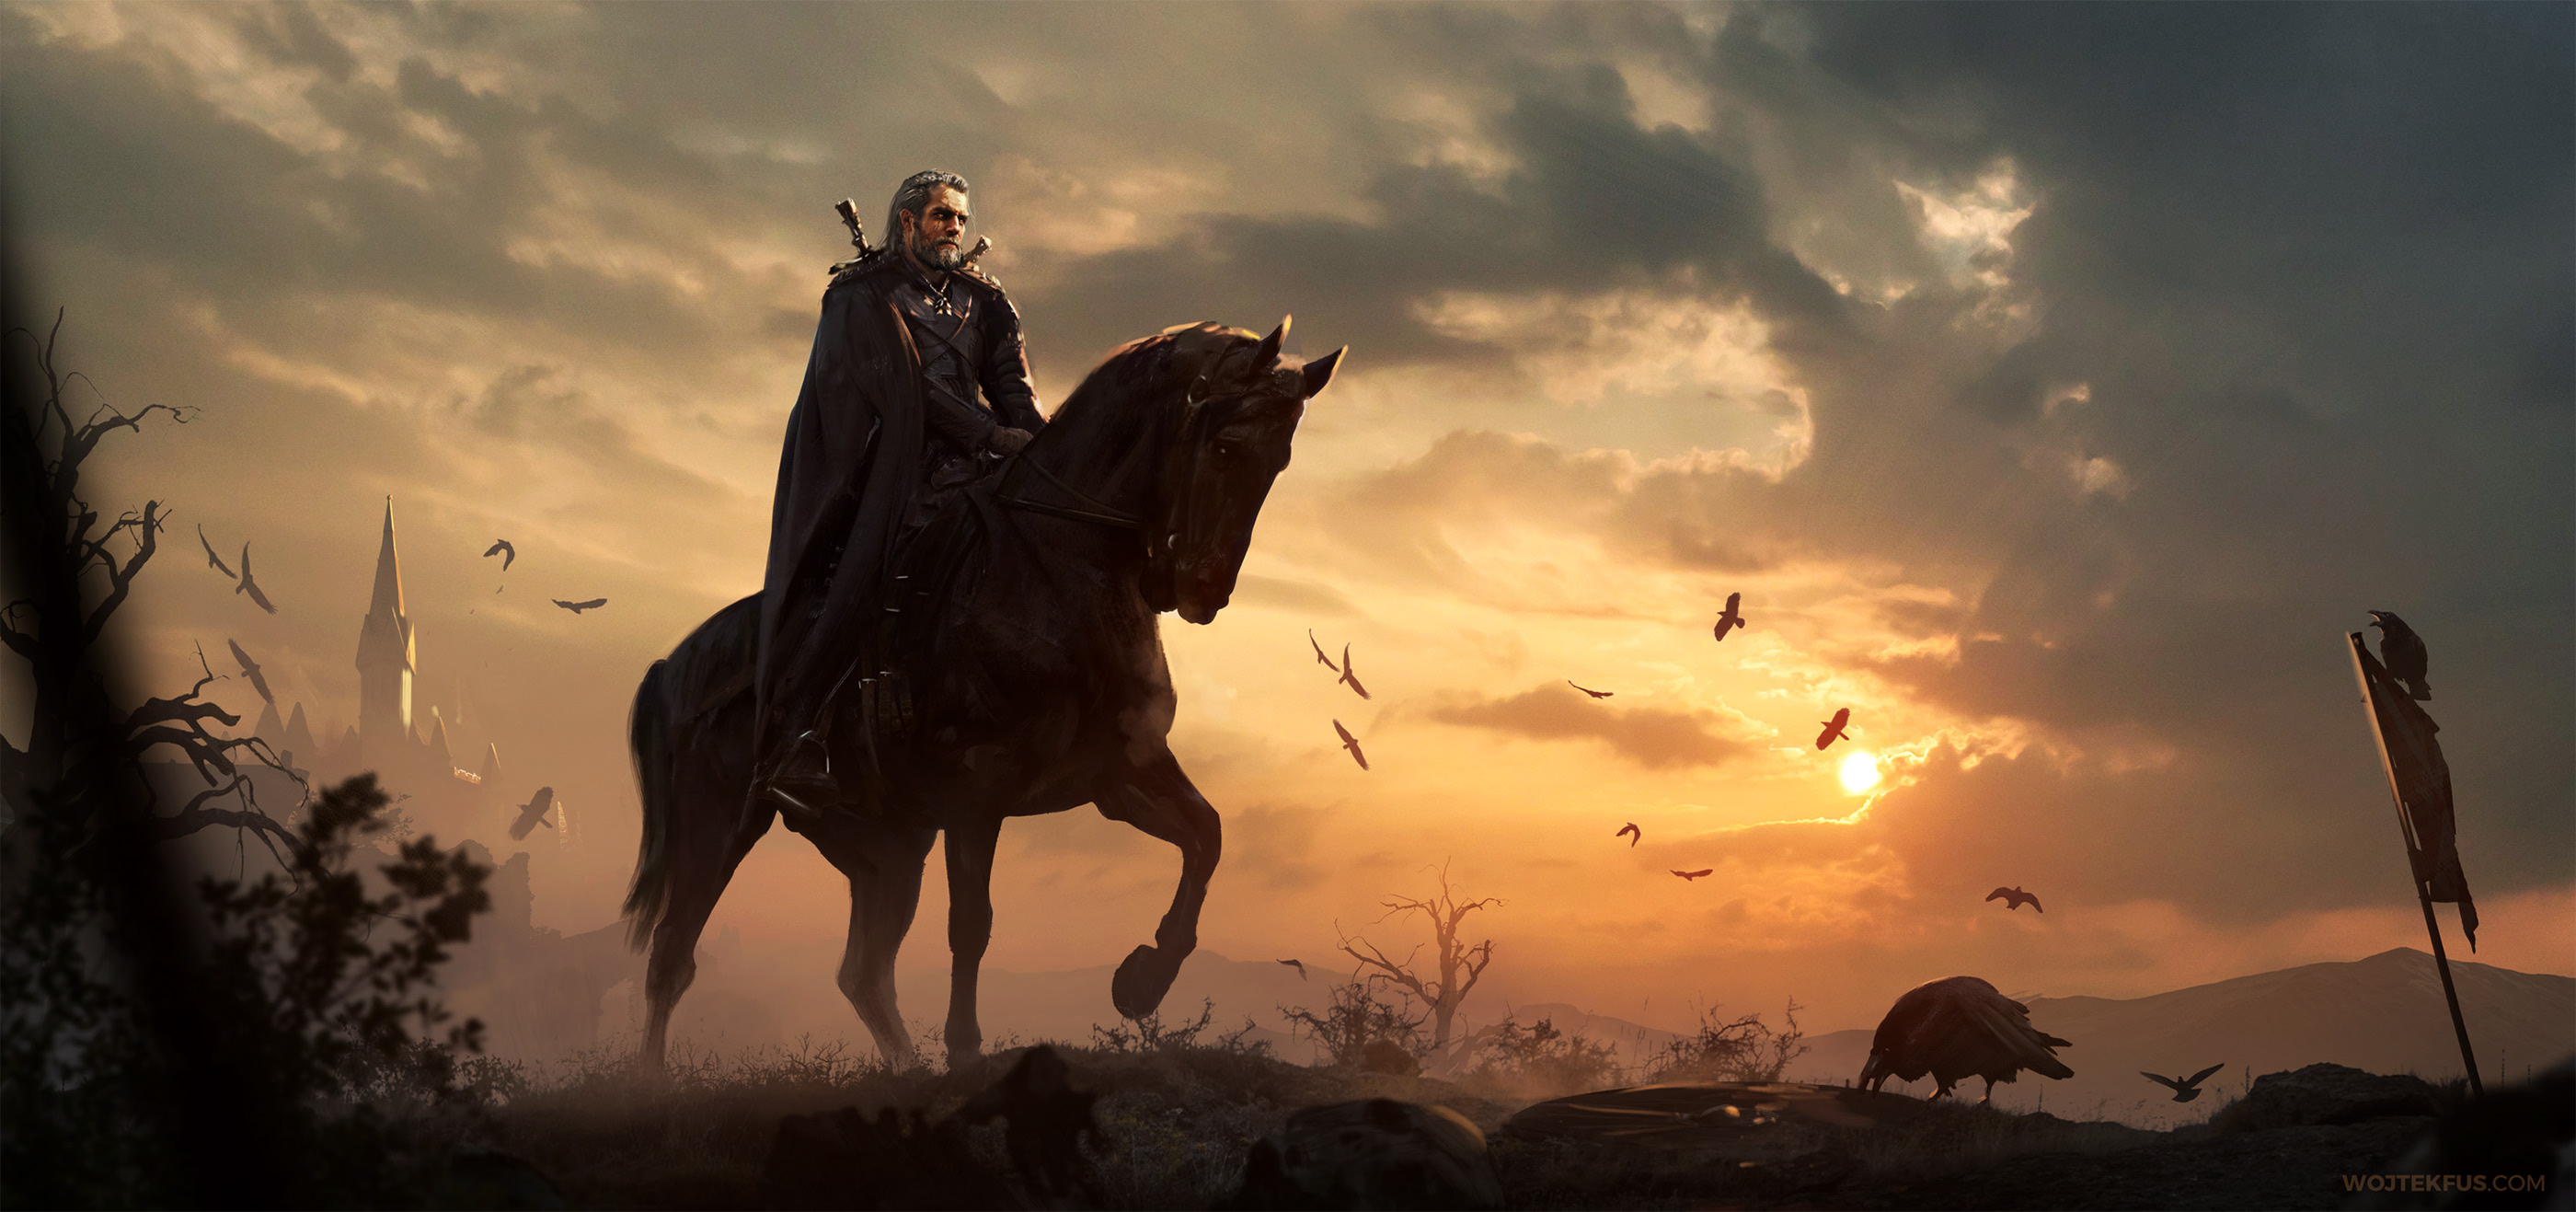 The Witcher Fan Art Collection